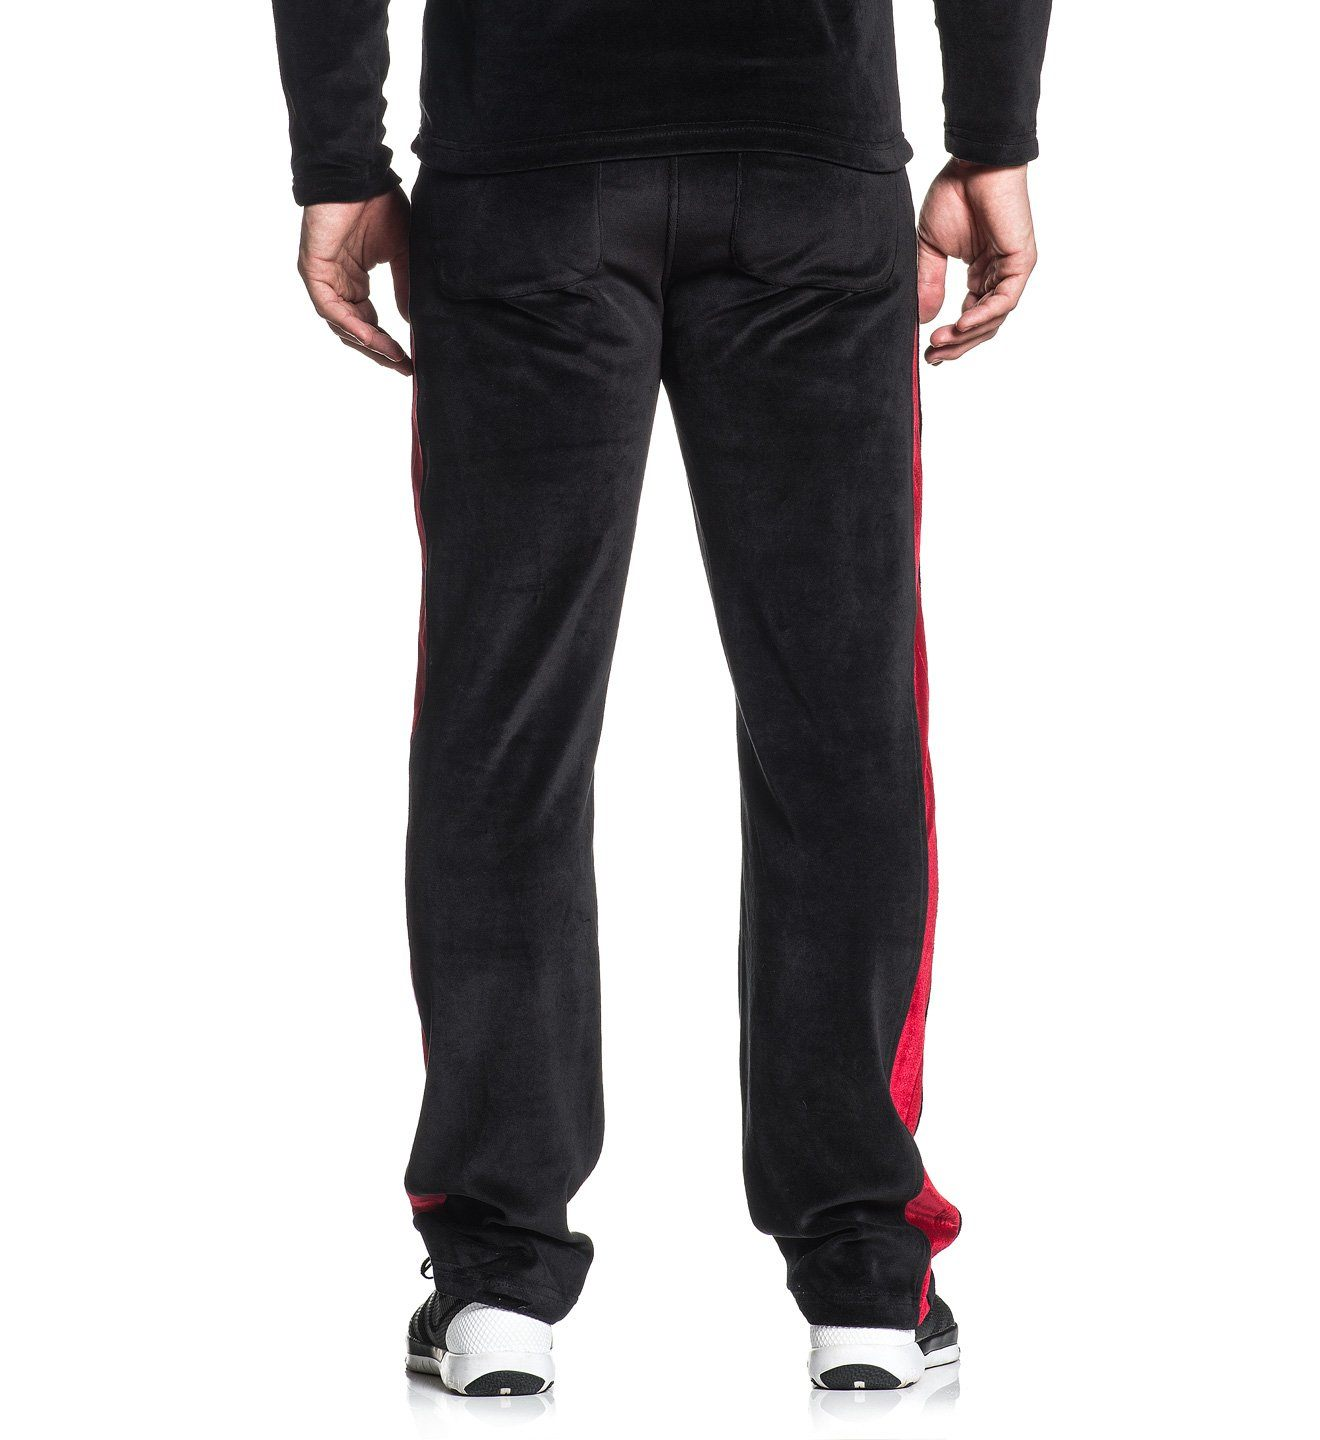 Striker Pants - Mens Track Jackets And Pants - American Fighter